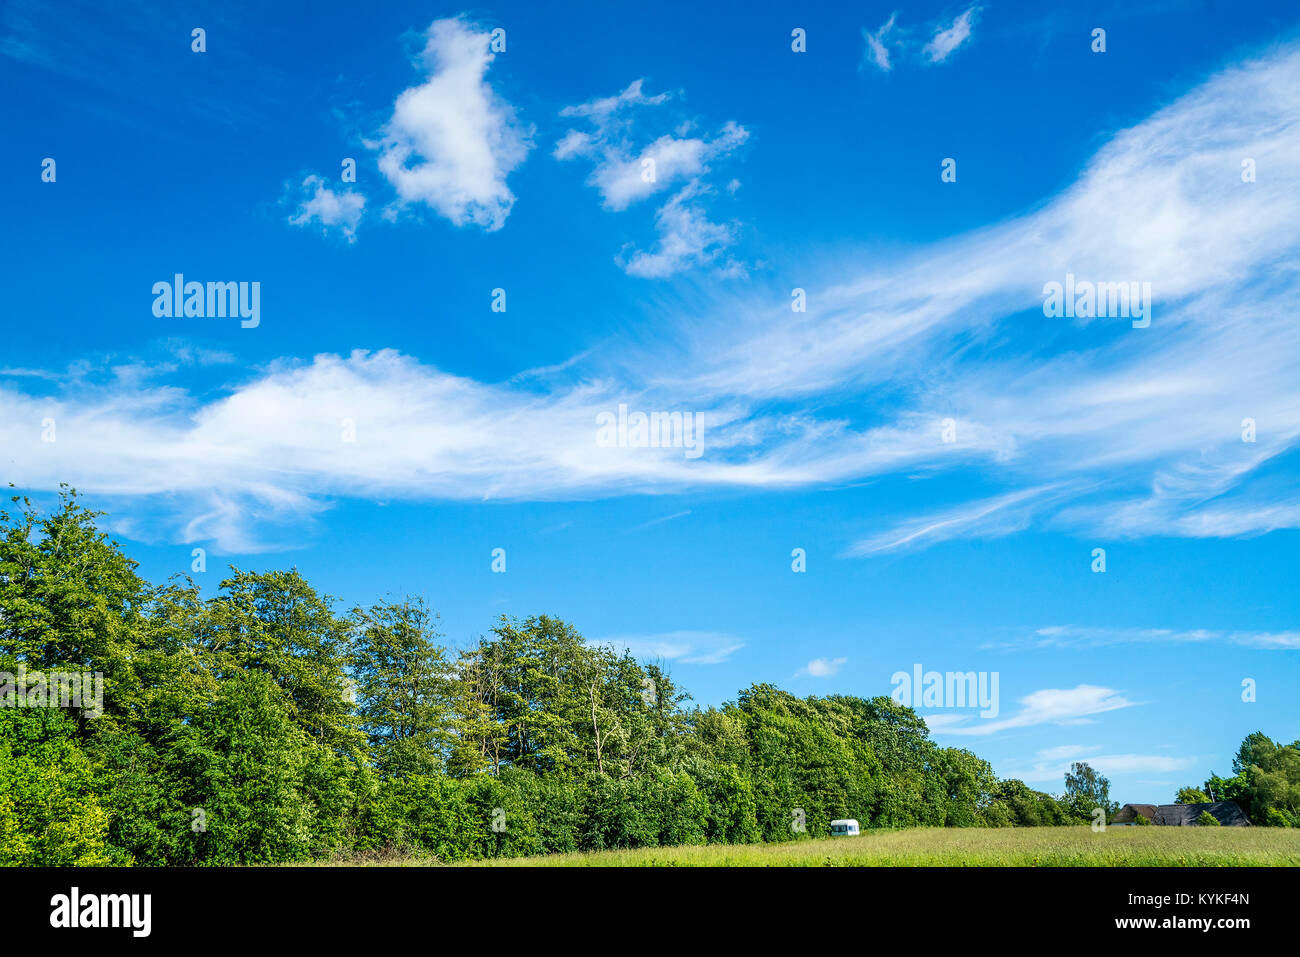 Camping trailer on a green field with blue sky in the summer - Stock Image